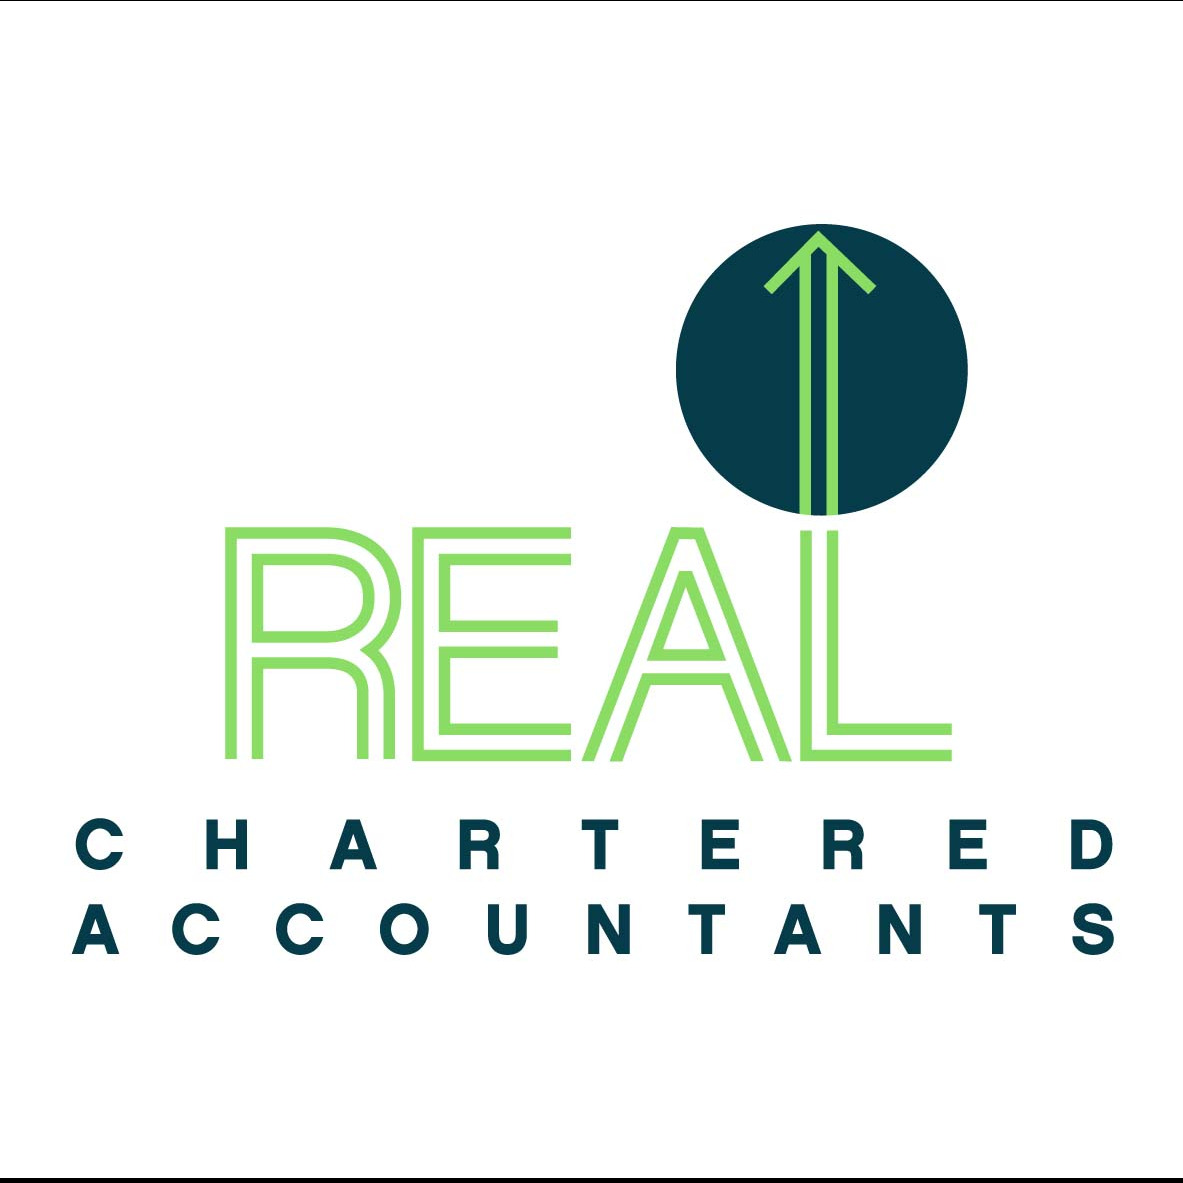 REAL Chartered Accountants Limited